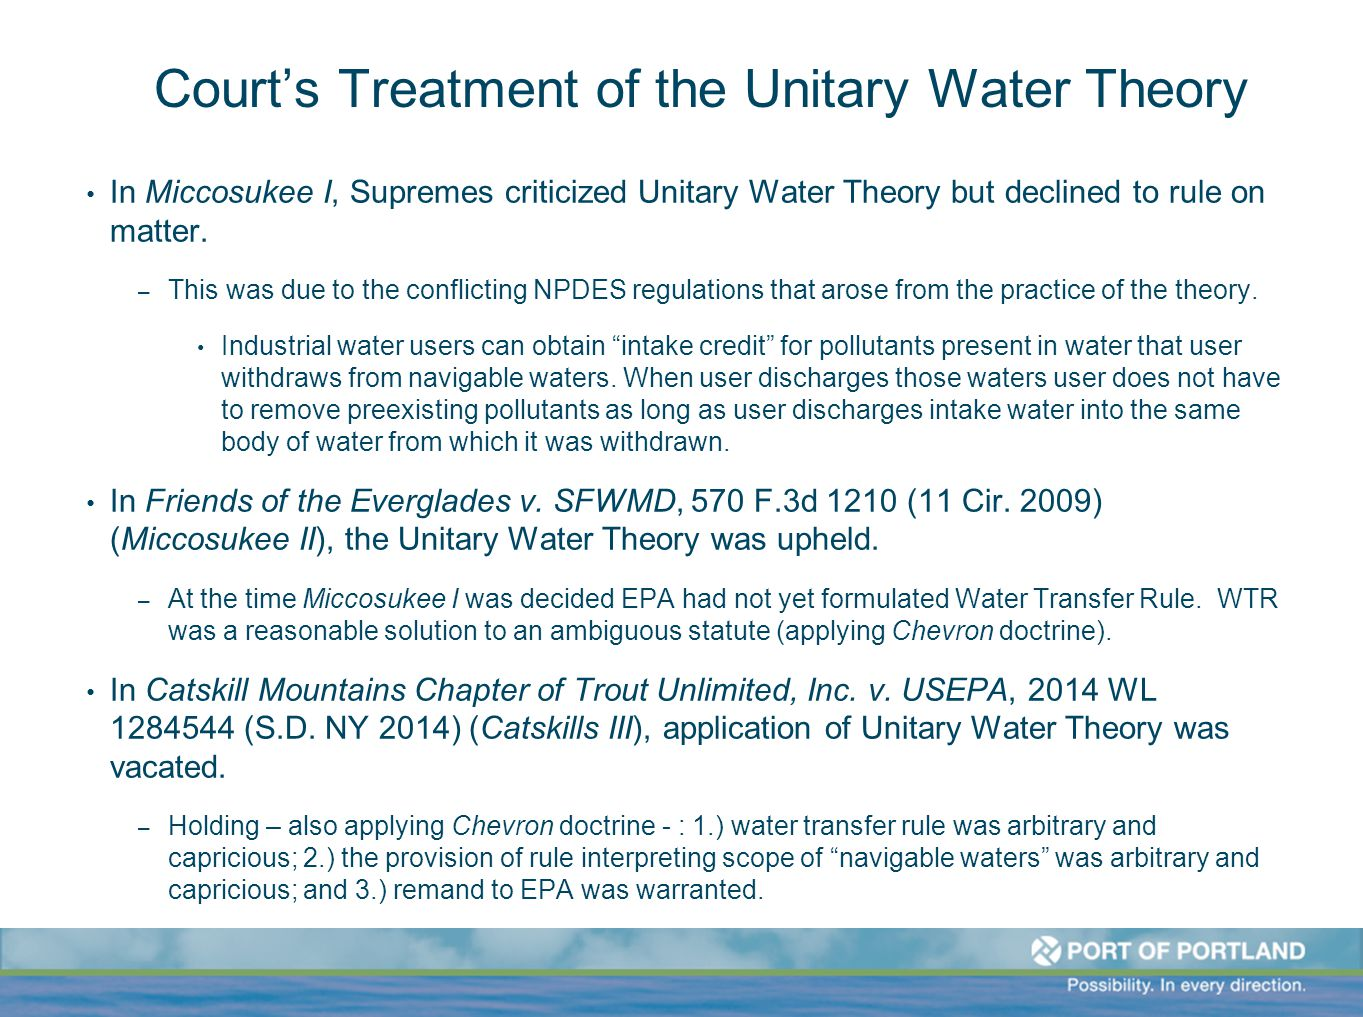 Court's Treatment of the Unitary Water Theory In Miccosukee I, Supremes criticized Unitary Water Theory but declined to rule on matter. – This was due